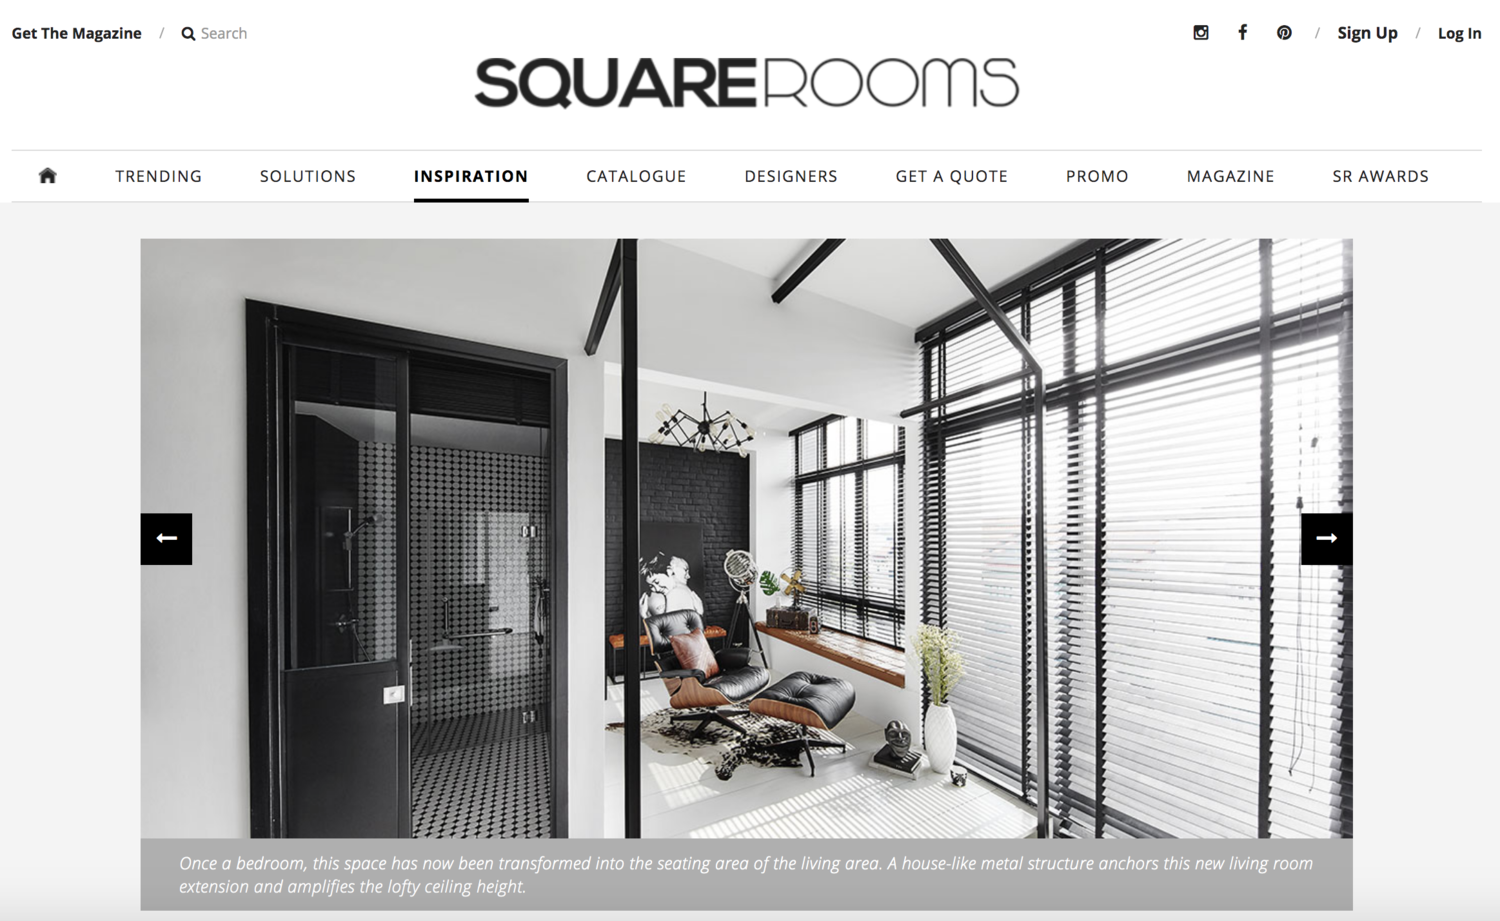 Square Room Online - https://squarerooms.com.sg/inspirations/feast-your-eyes-on-this-bold-and-beautiful-joo-chiat-condo/